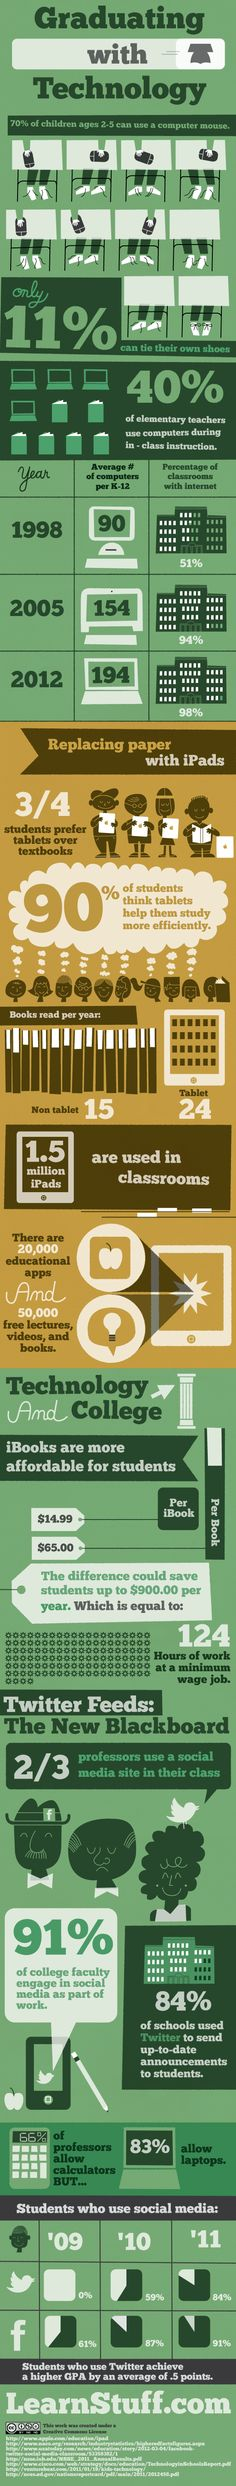 How Twitter Is Helping Students Graduate With Technology [INFOGRAPHIC]